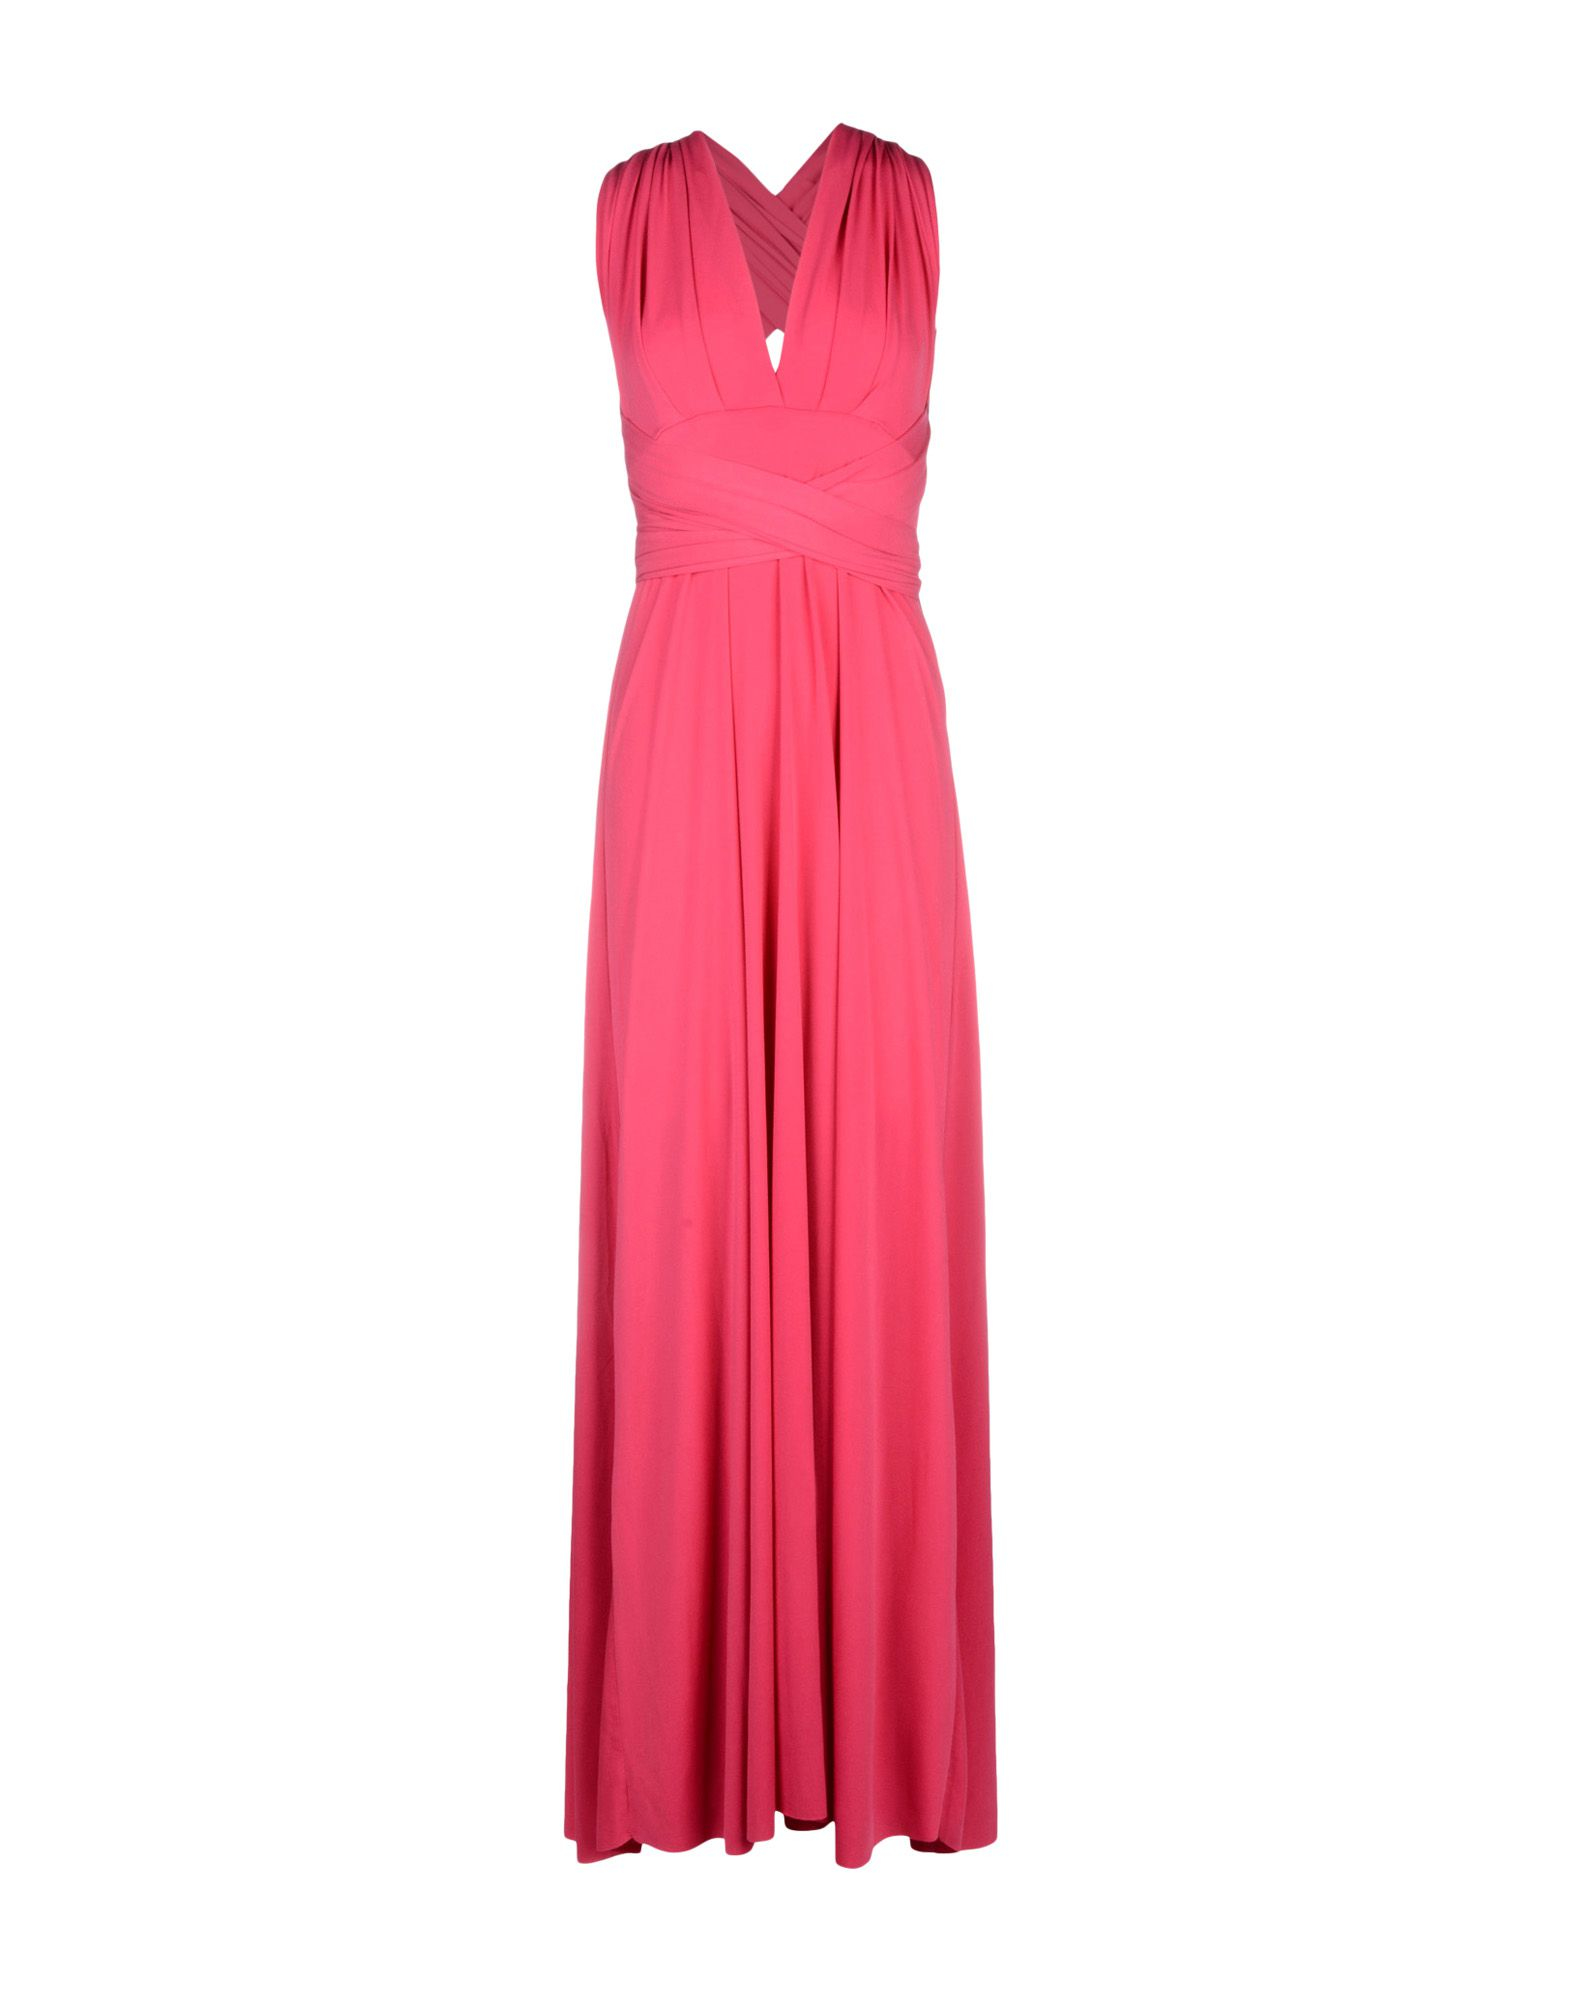 405d88b81d Von Vonni Long Dress in Pink - Lyst